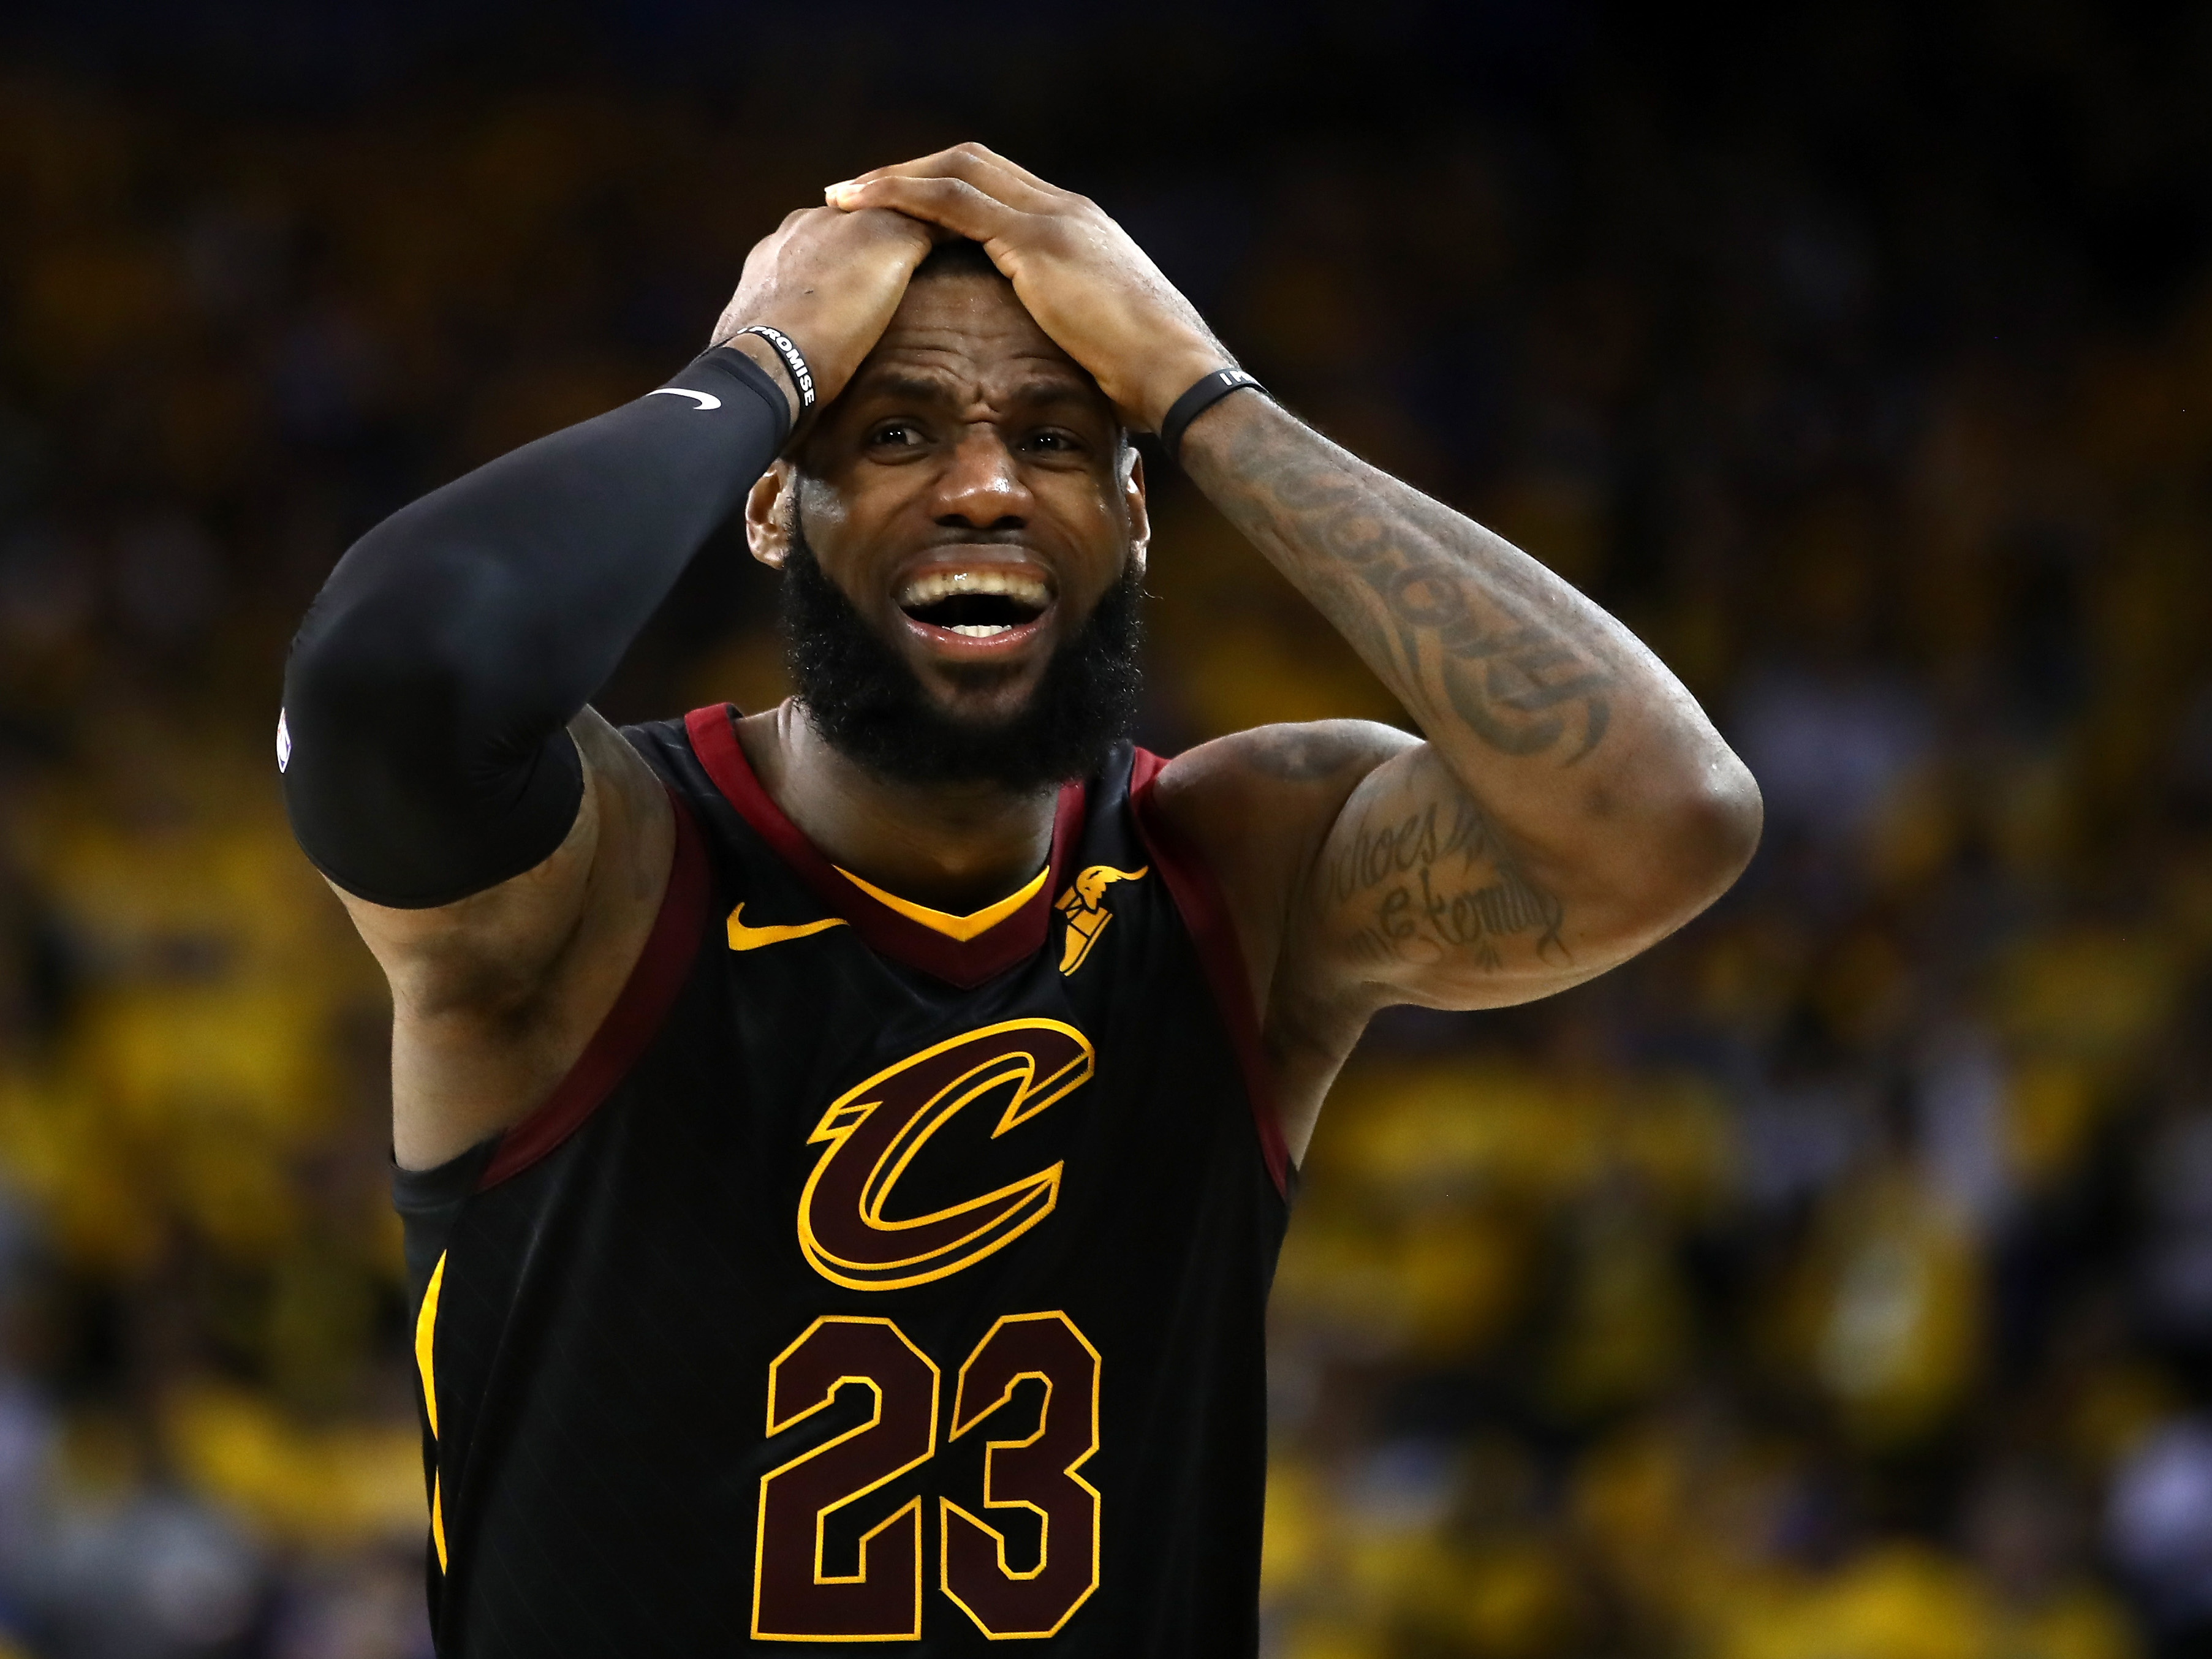 Everything Was Strange About Game 1 — Except The JR Smith Gaffe | FiveThirtyEight